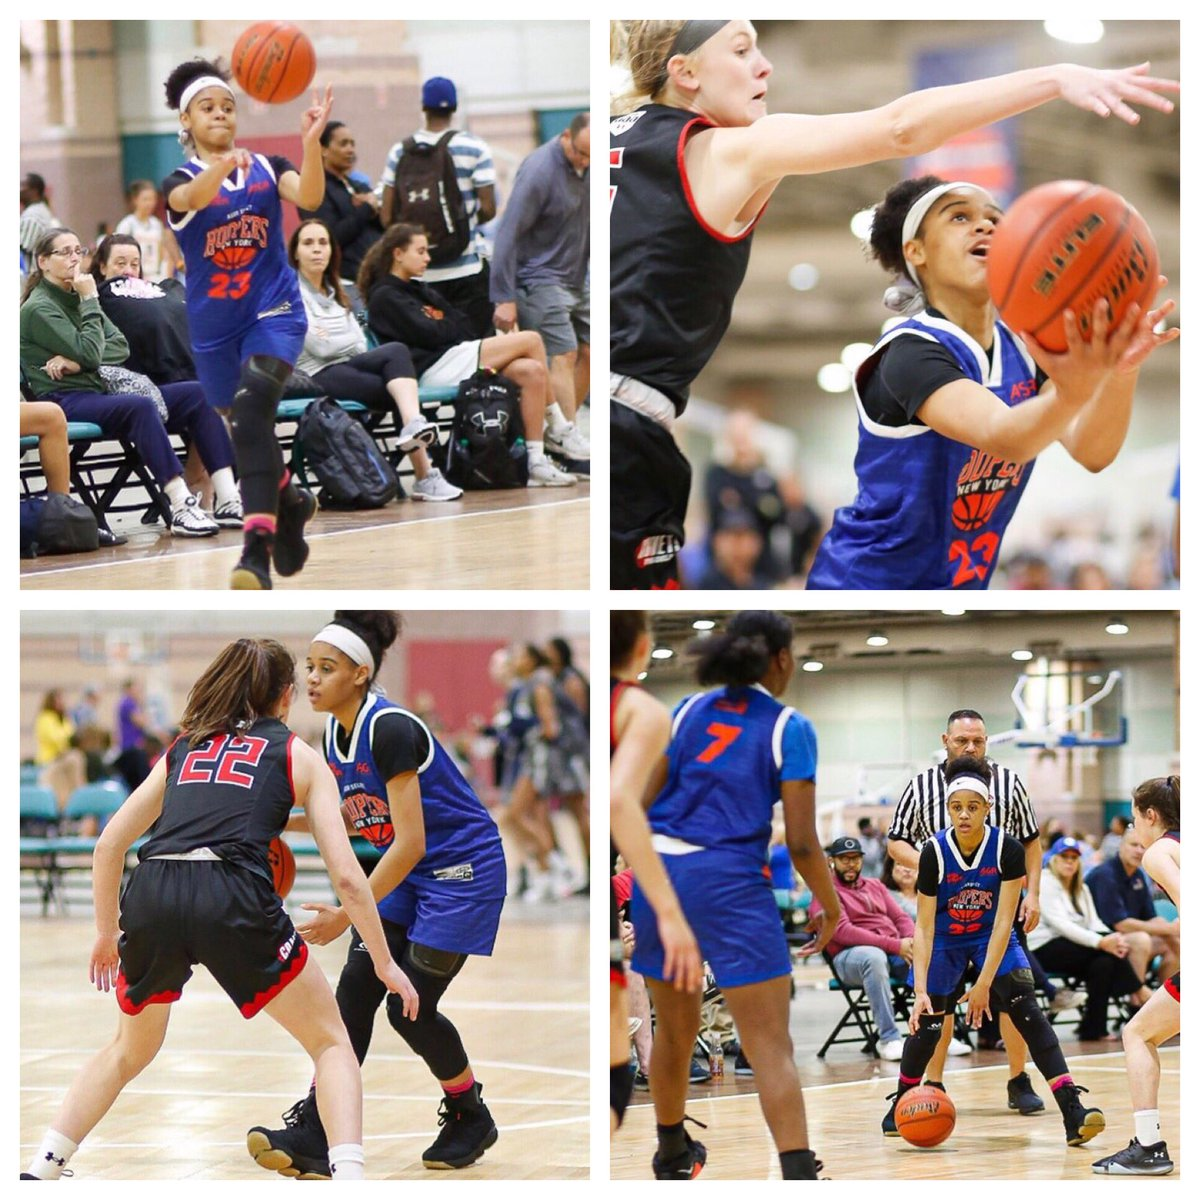 Thank you for the pics! @NYGHoops  Atlantic City Showcase @HOOPERS_NY<br>http://pic.twitter.com/D4FE3487QX